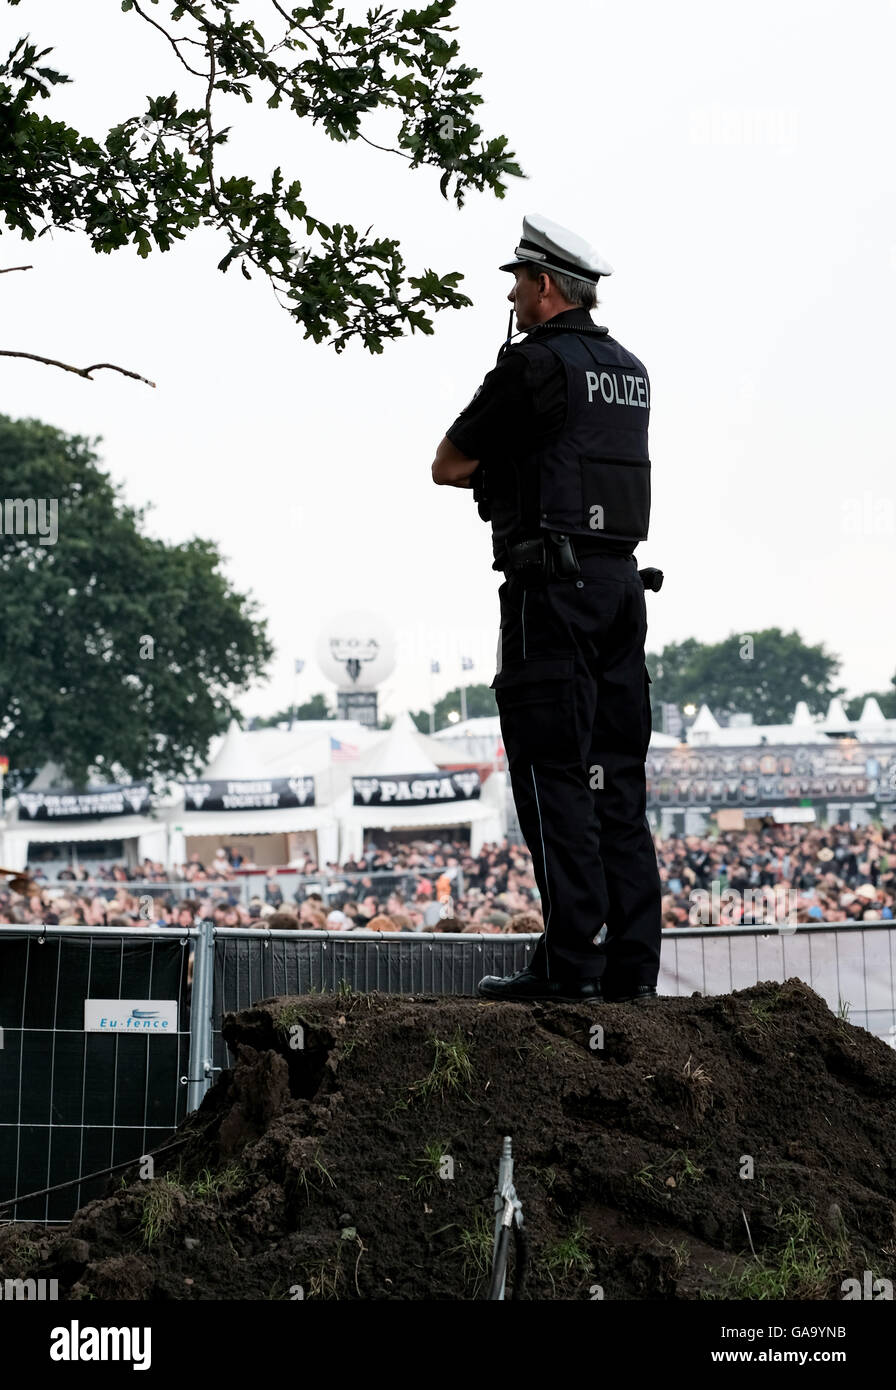 Policemen controlling the grounds of the Wacken Open Air festival in Wacken, Germany, 4 August 2016. 75,000 fans - Stock Image